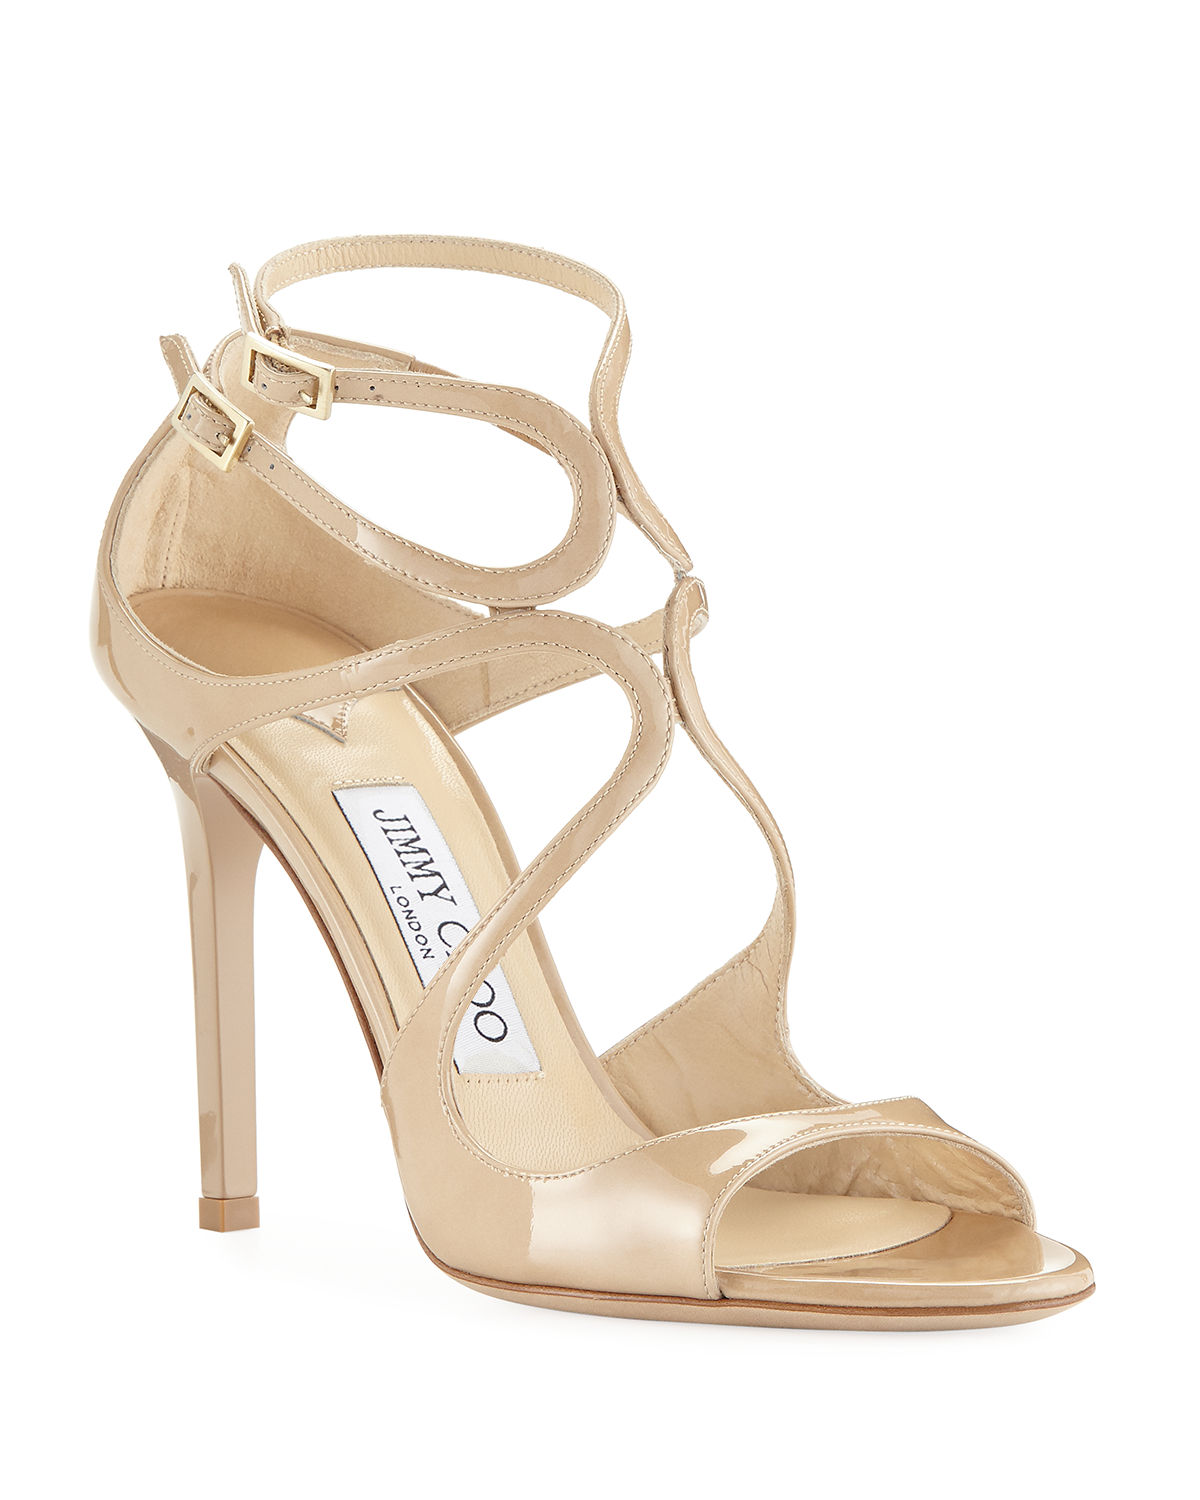 ad79076a86fda0 Jimmy Choo Lang 100mm Patent Strappy Sandals